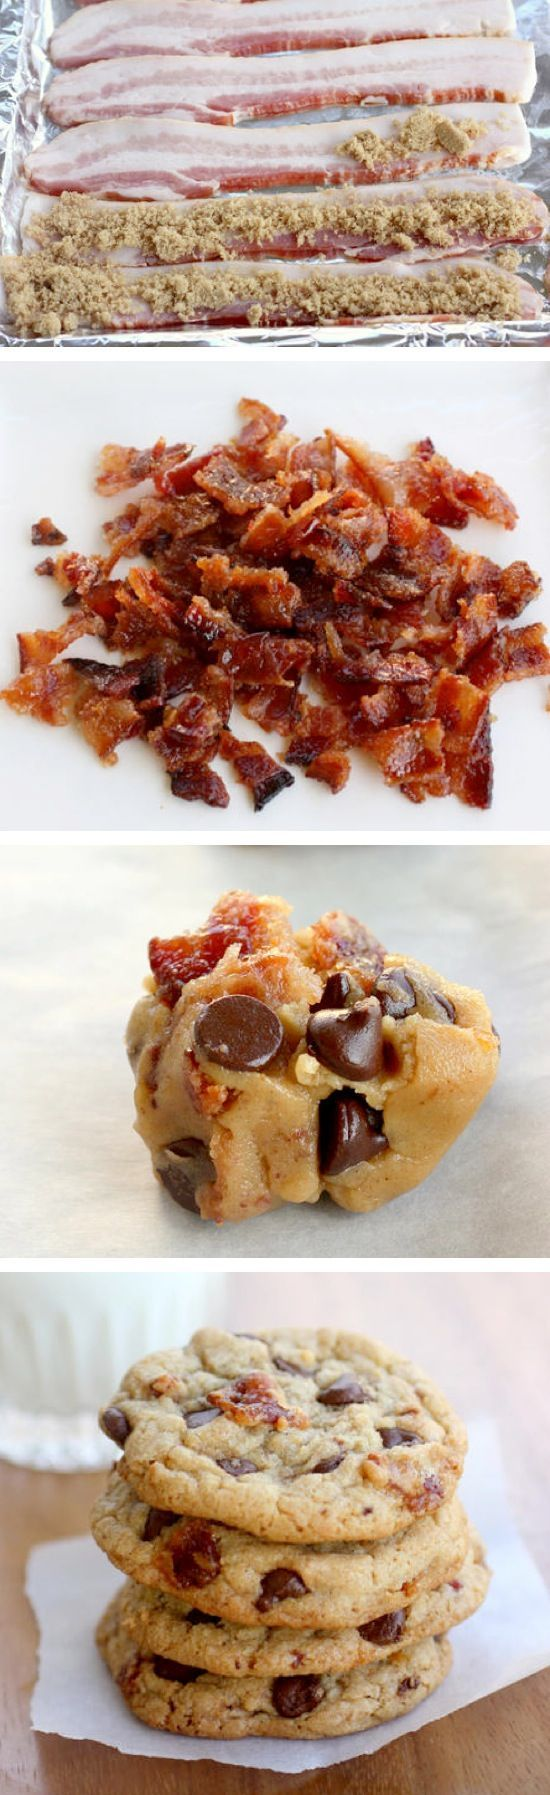 Candied Bacon Chocolate Chip Cookies. Made these 9/25. Flavor was ok- recipe called for way too much baking soda which overpowered everything else. Will make again but reduce the b.s. to half